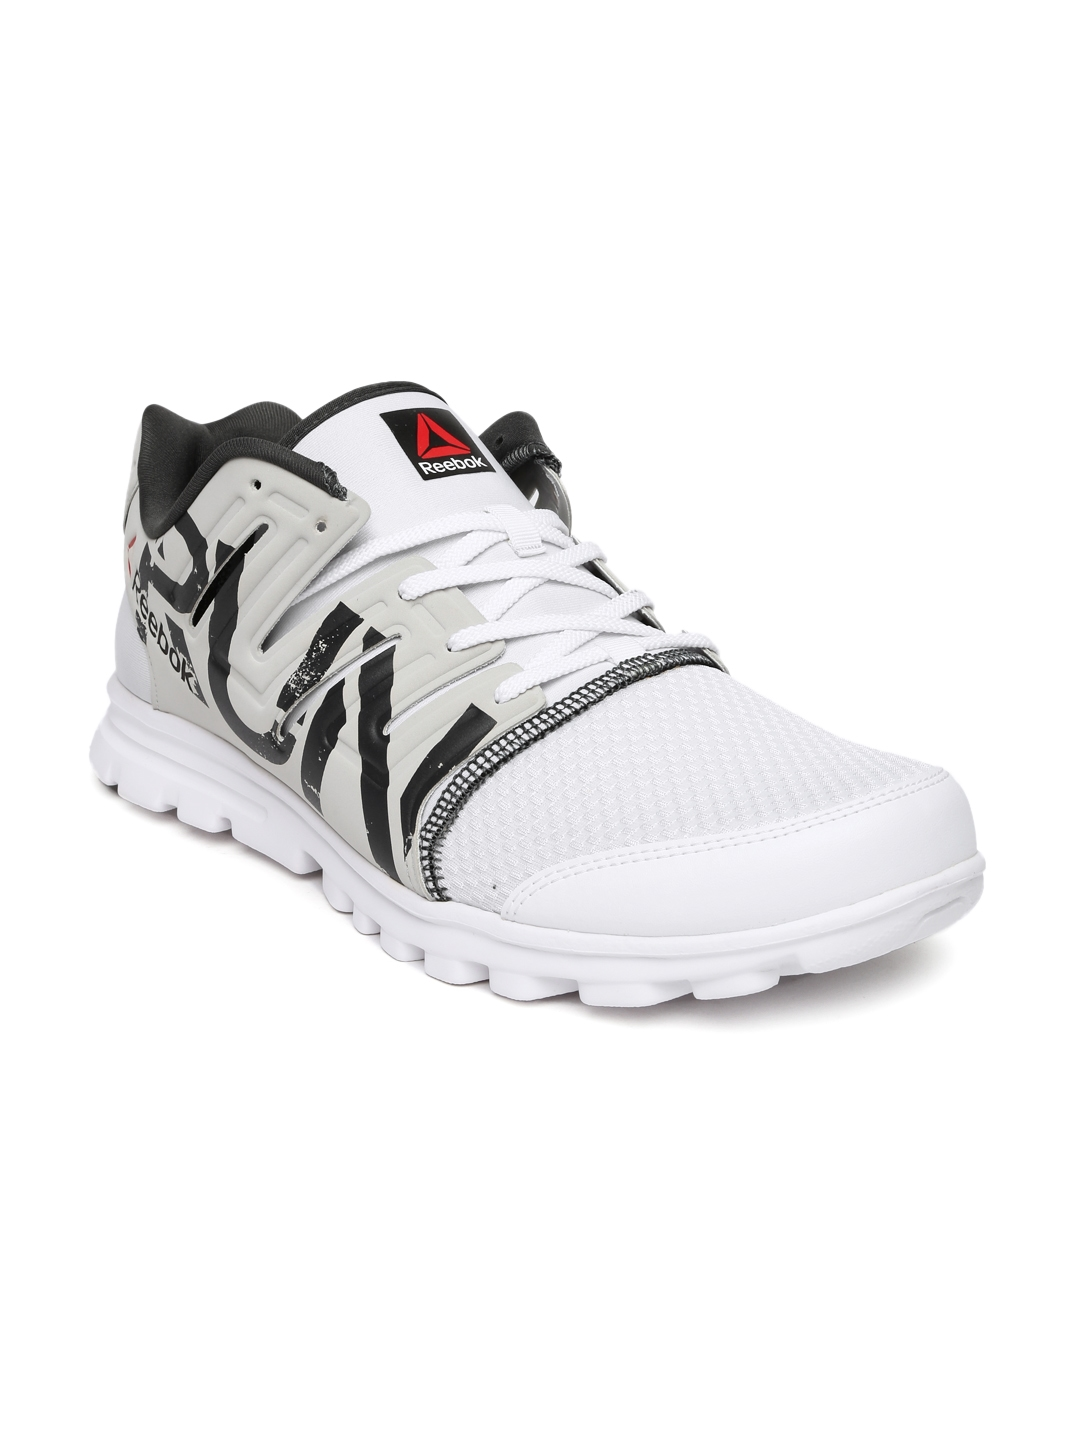 Buy Reebok Men White   Grey Ultra Speed Running Shoes - Sports Shoes ... b569fe44e